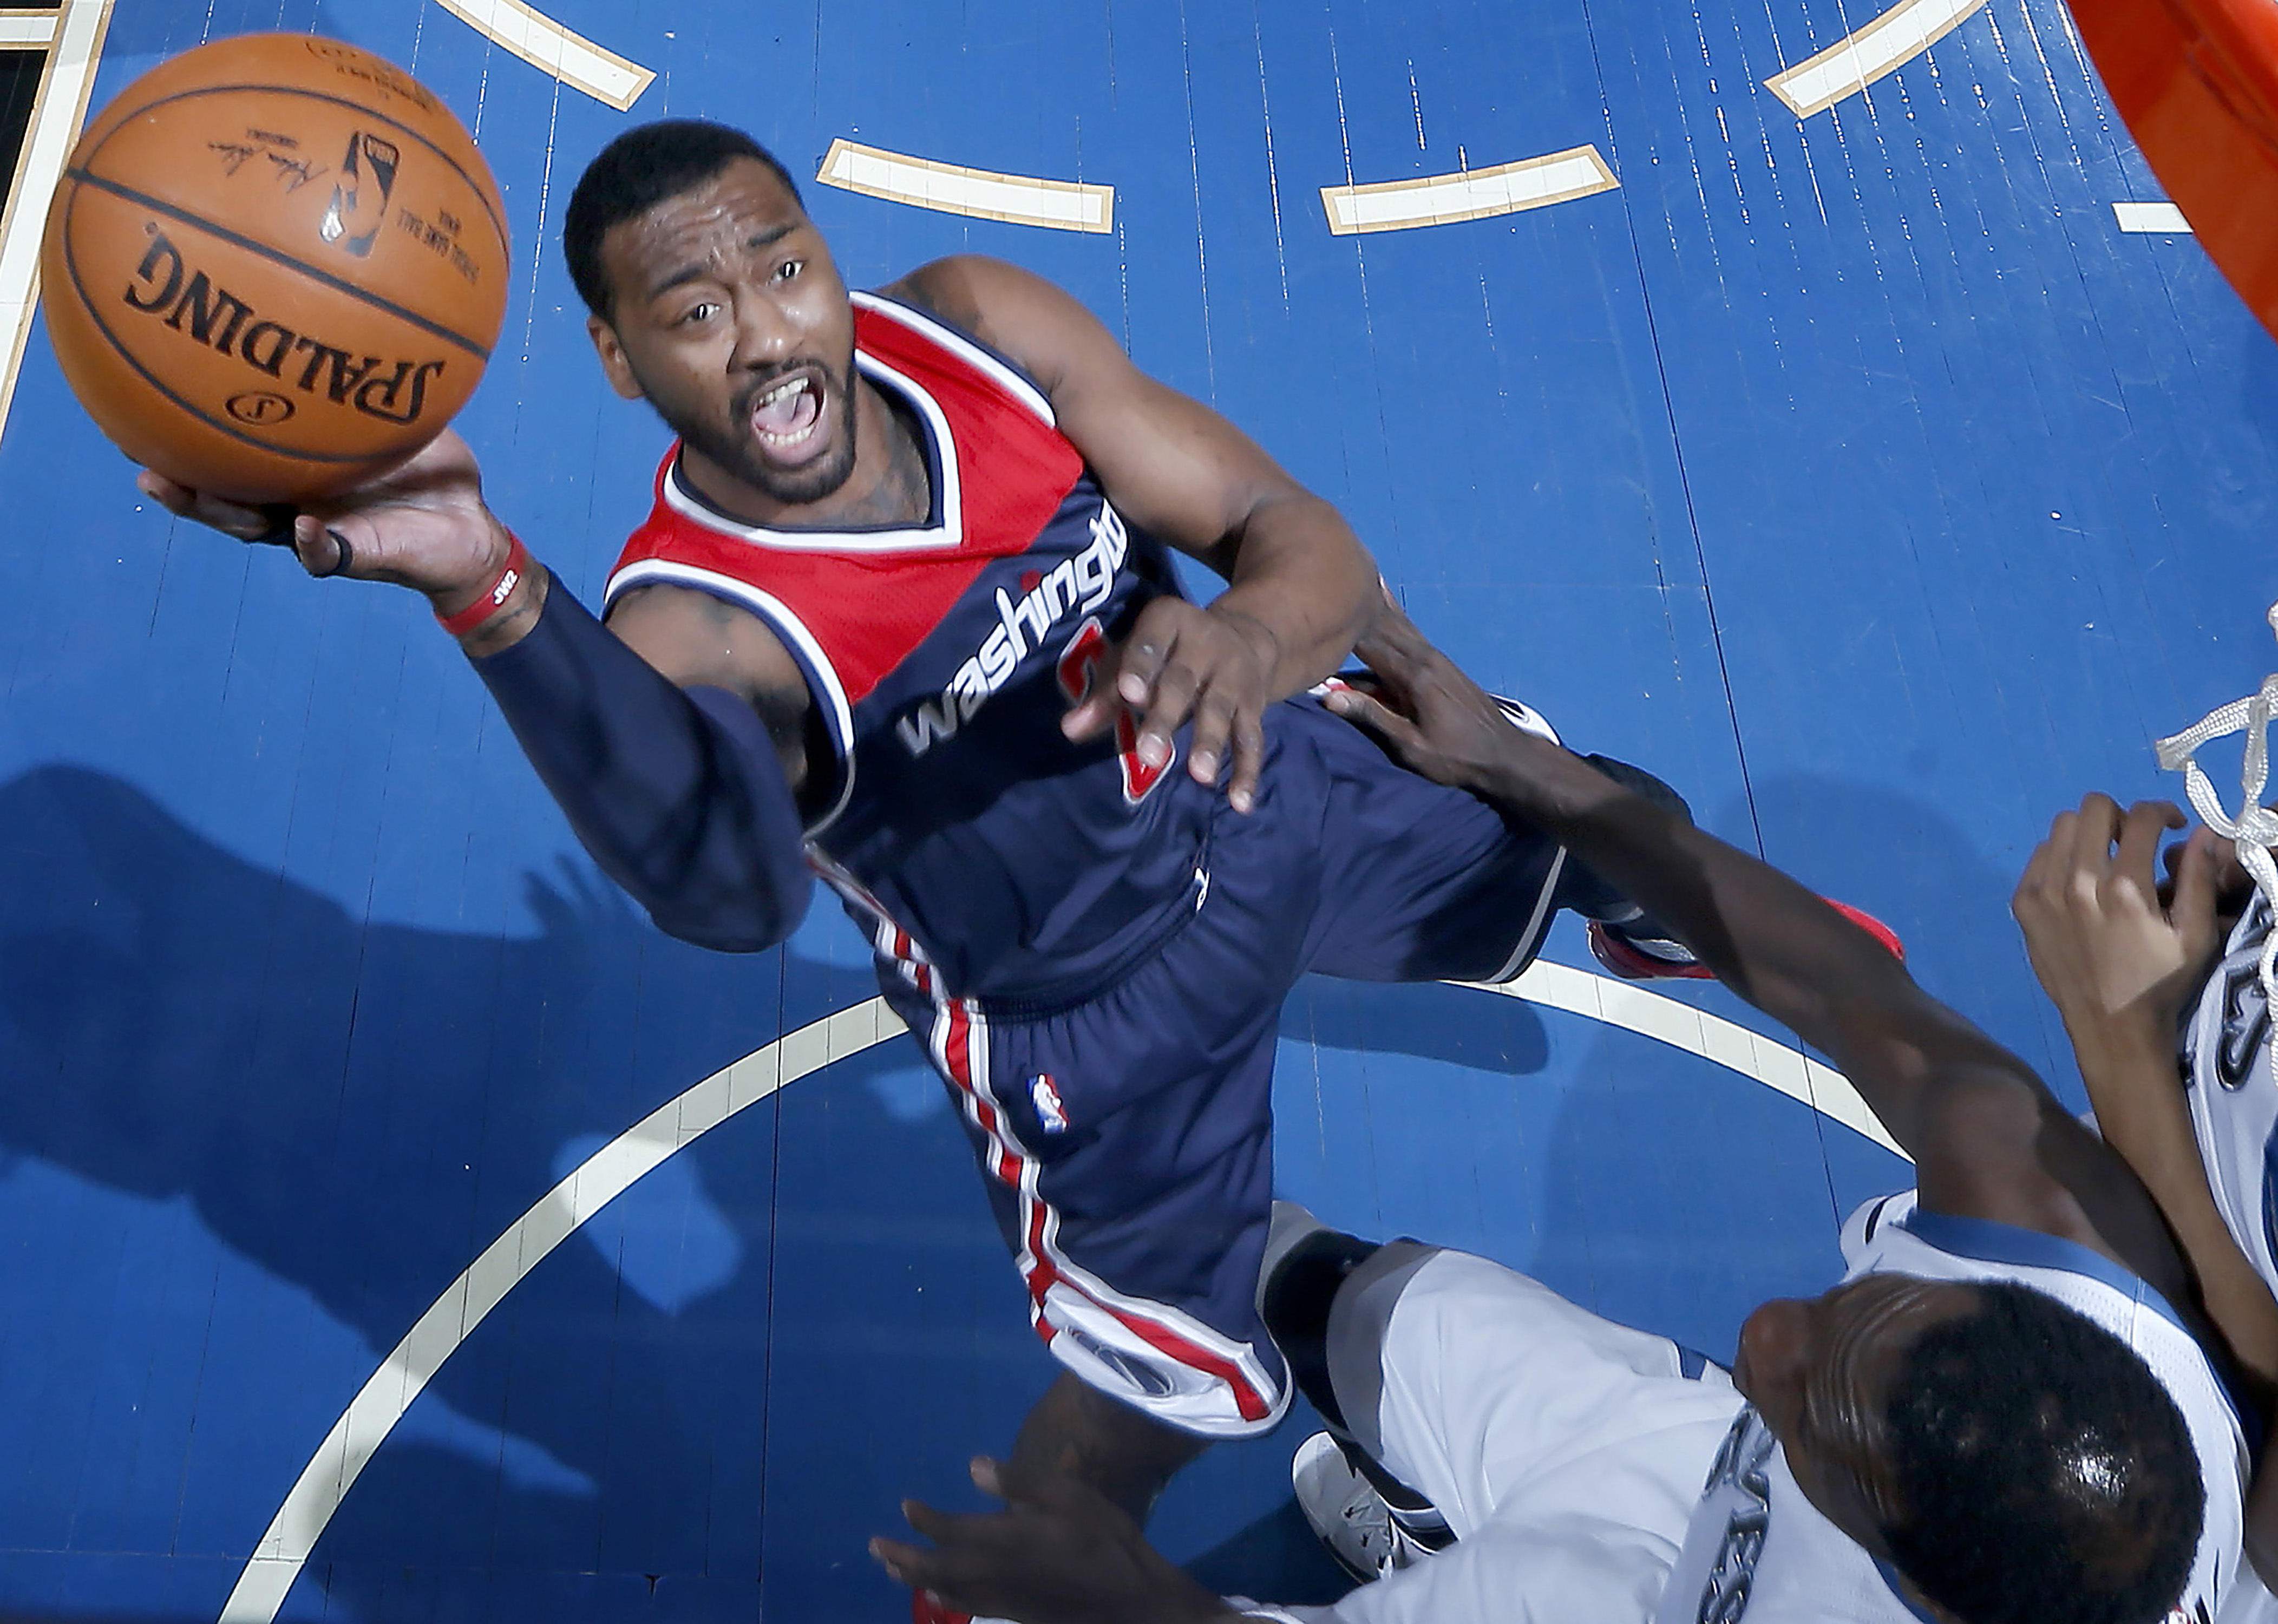 Washington Wizards´ John Wall (2) attempts a shot in the first half against the Minnesota Timberwolves on Monday, March 13, 2017 at Target Center in Minneapolis, Minn. (Carlos Gonzalez/Minneapolis Star Tribune/TNS)